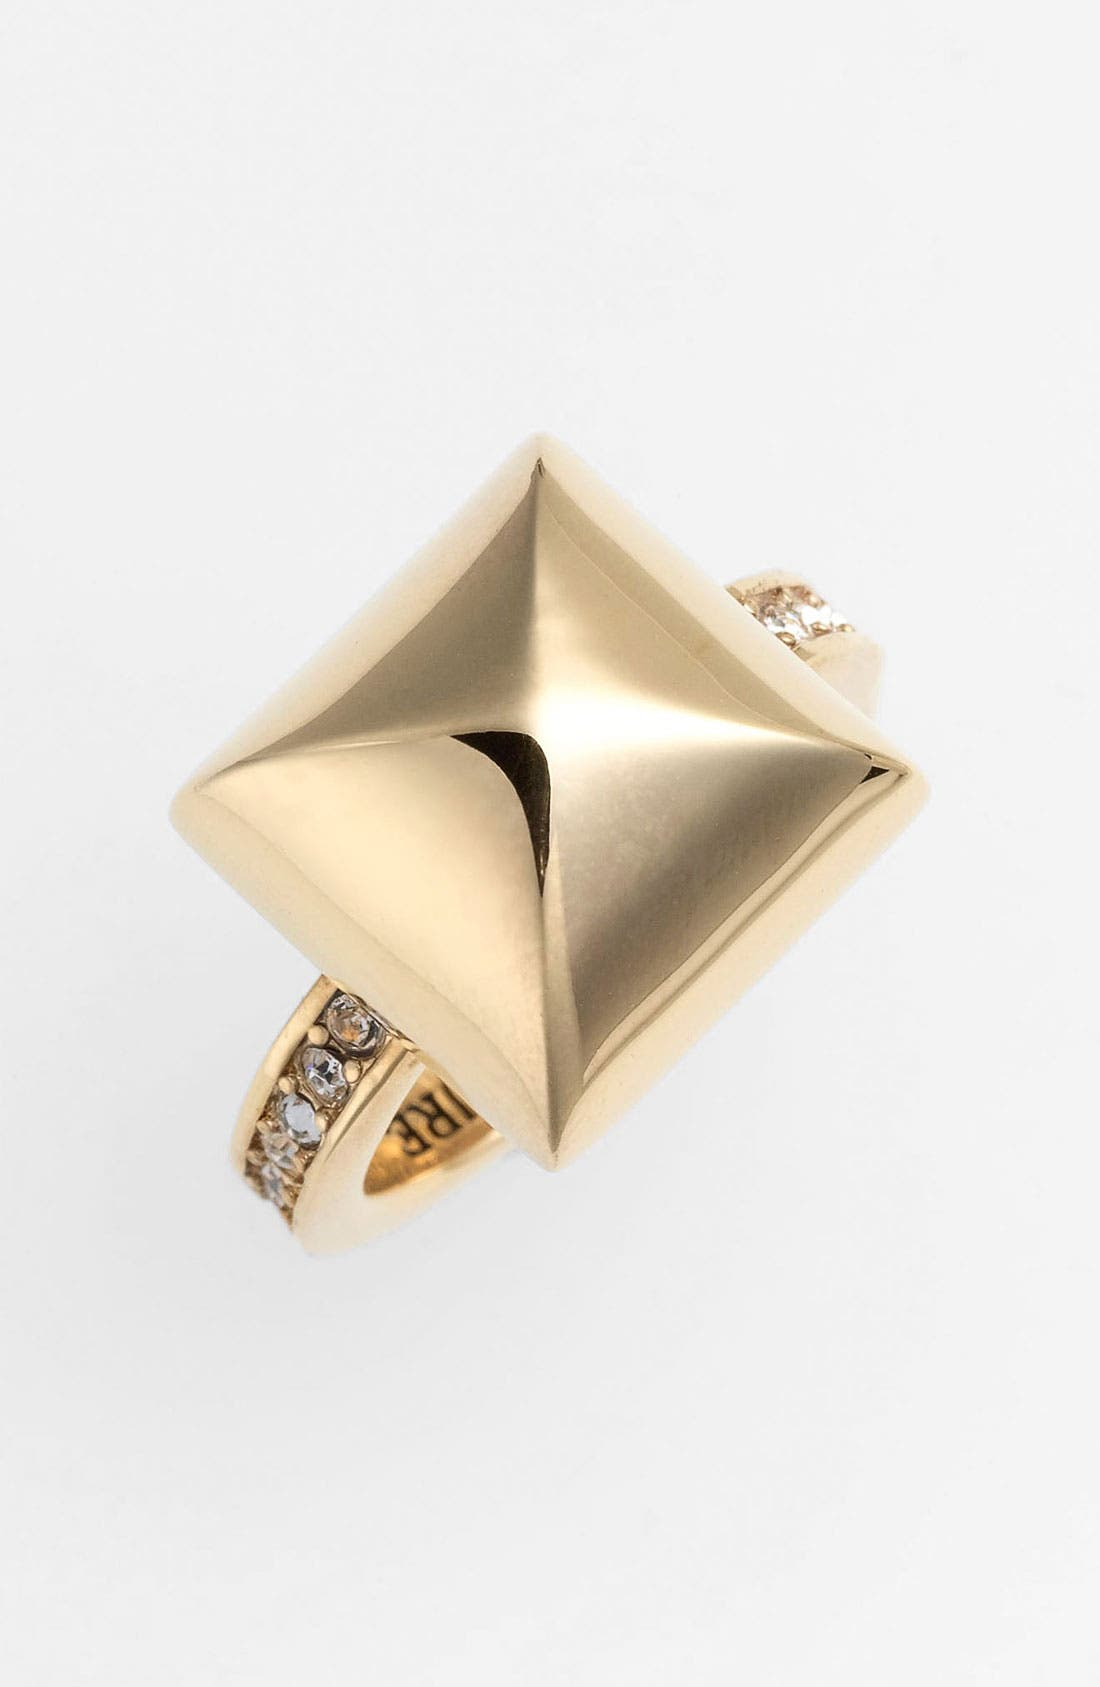 Alternate Image 1 Selected - Juicy Couture 'Heavy Metal' Pyramid Ring